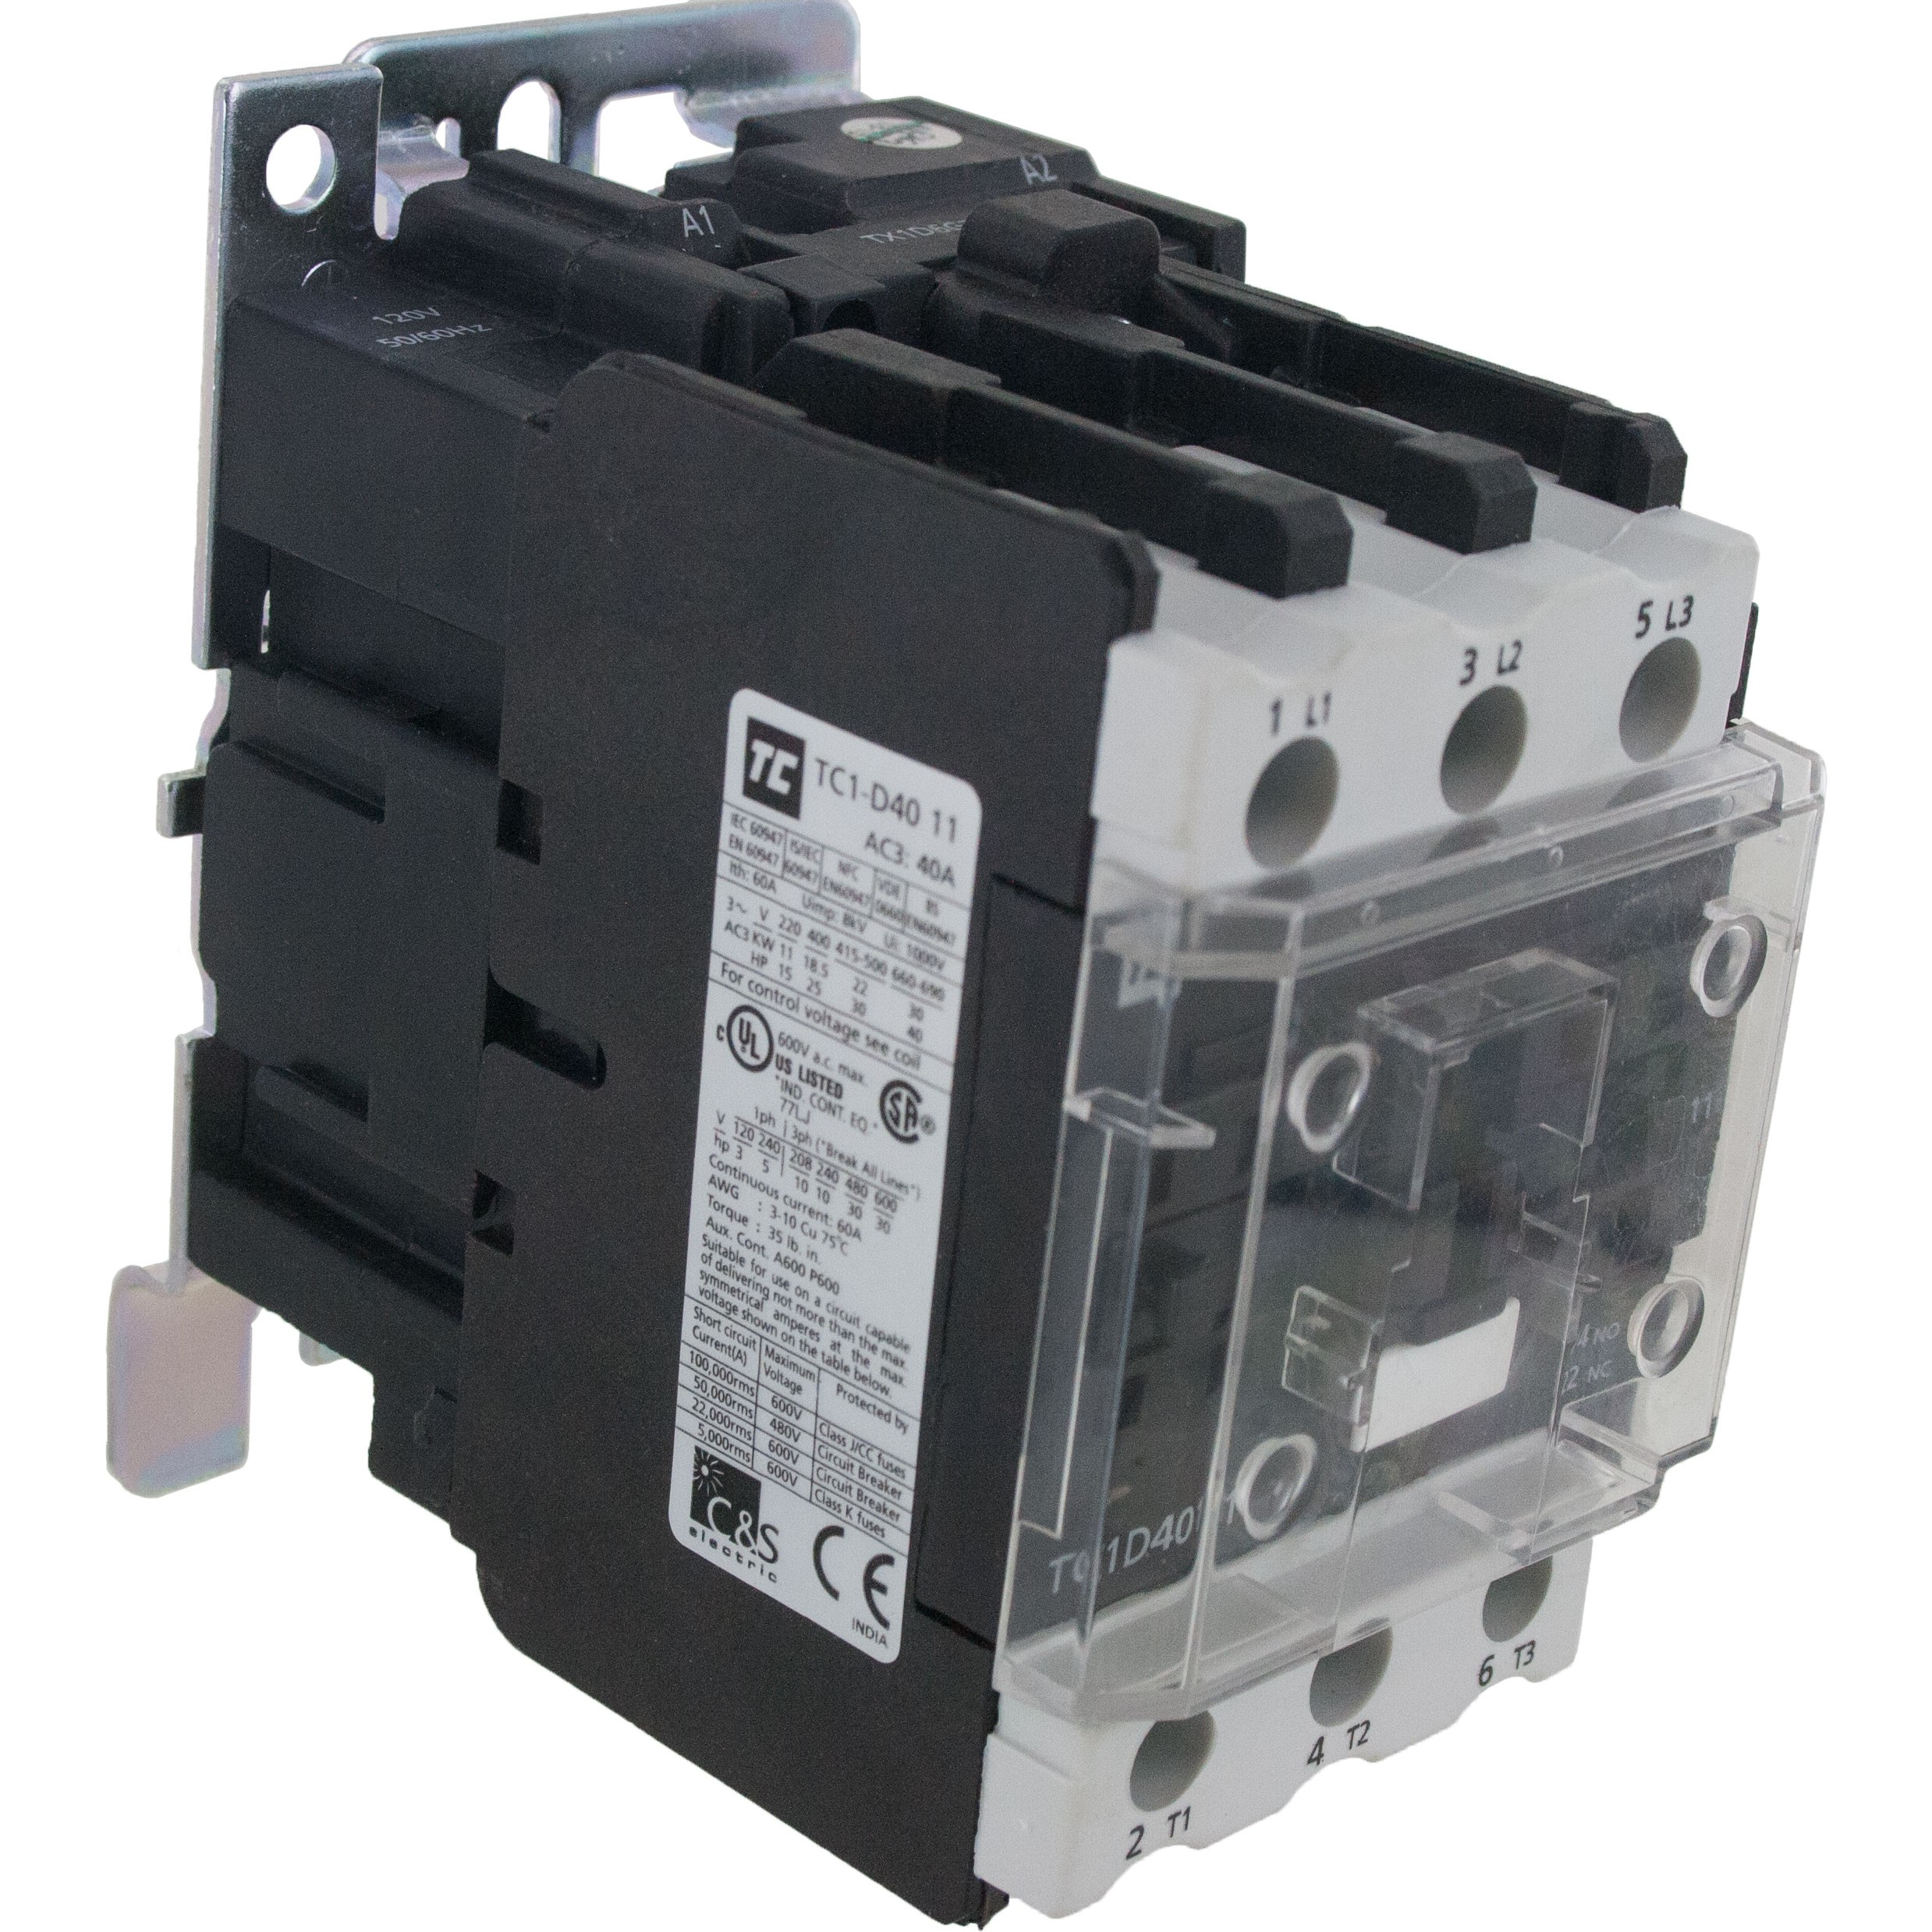 3 Pole Contactor 40 Amp 1 N/O - 1 N/C 575 Volt AC Coil Angle